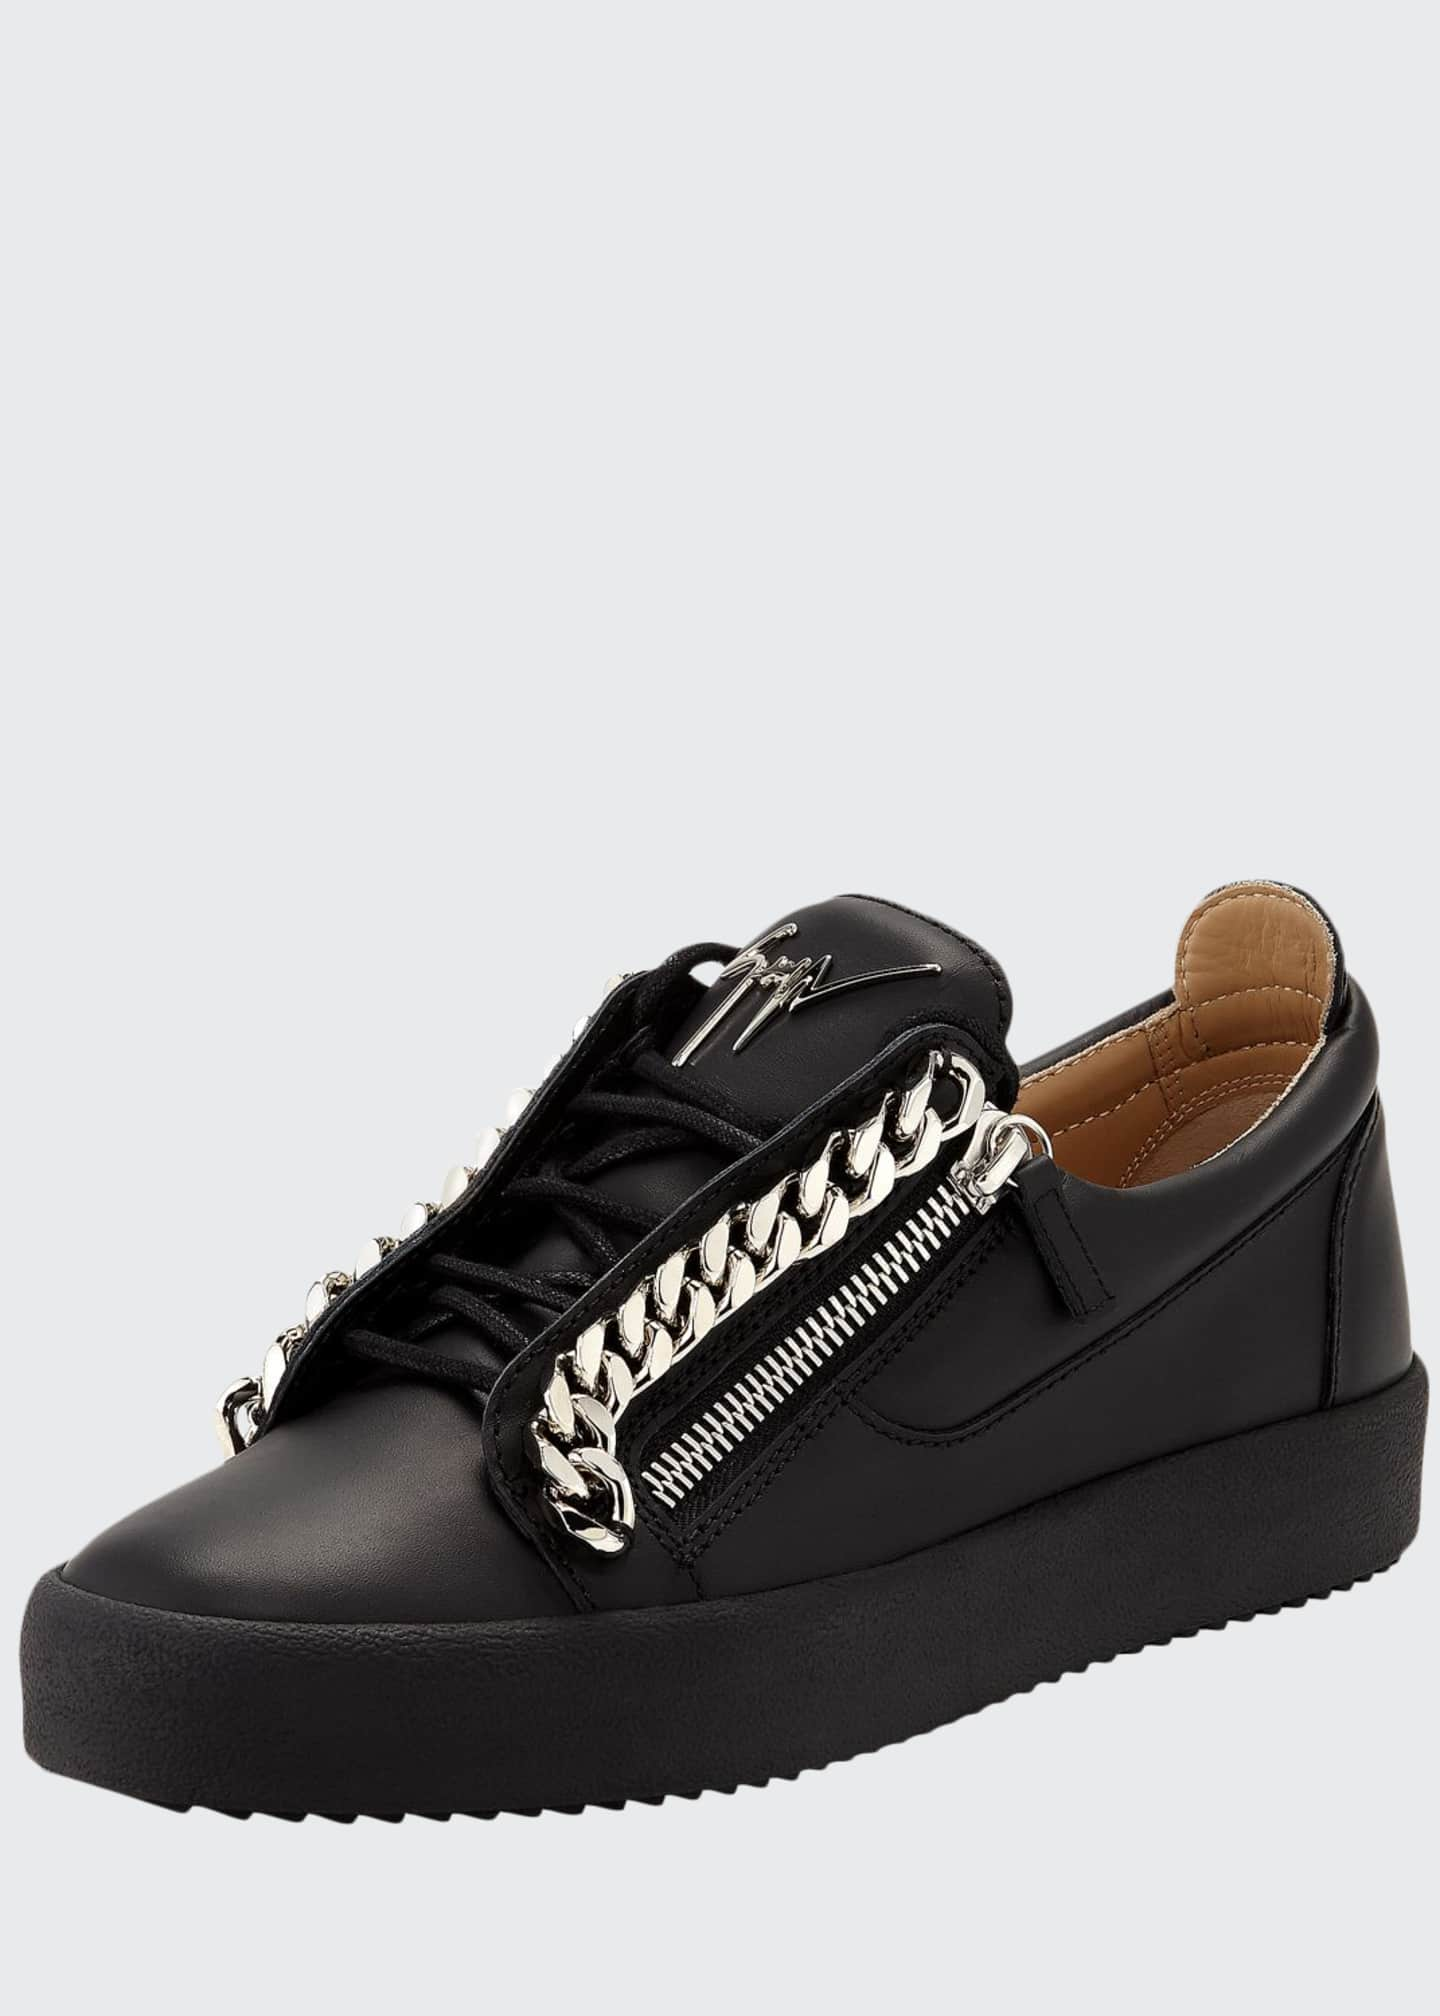 Giuseppe Zanotti Men's Curb-Chain Leather Sneakers